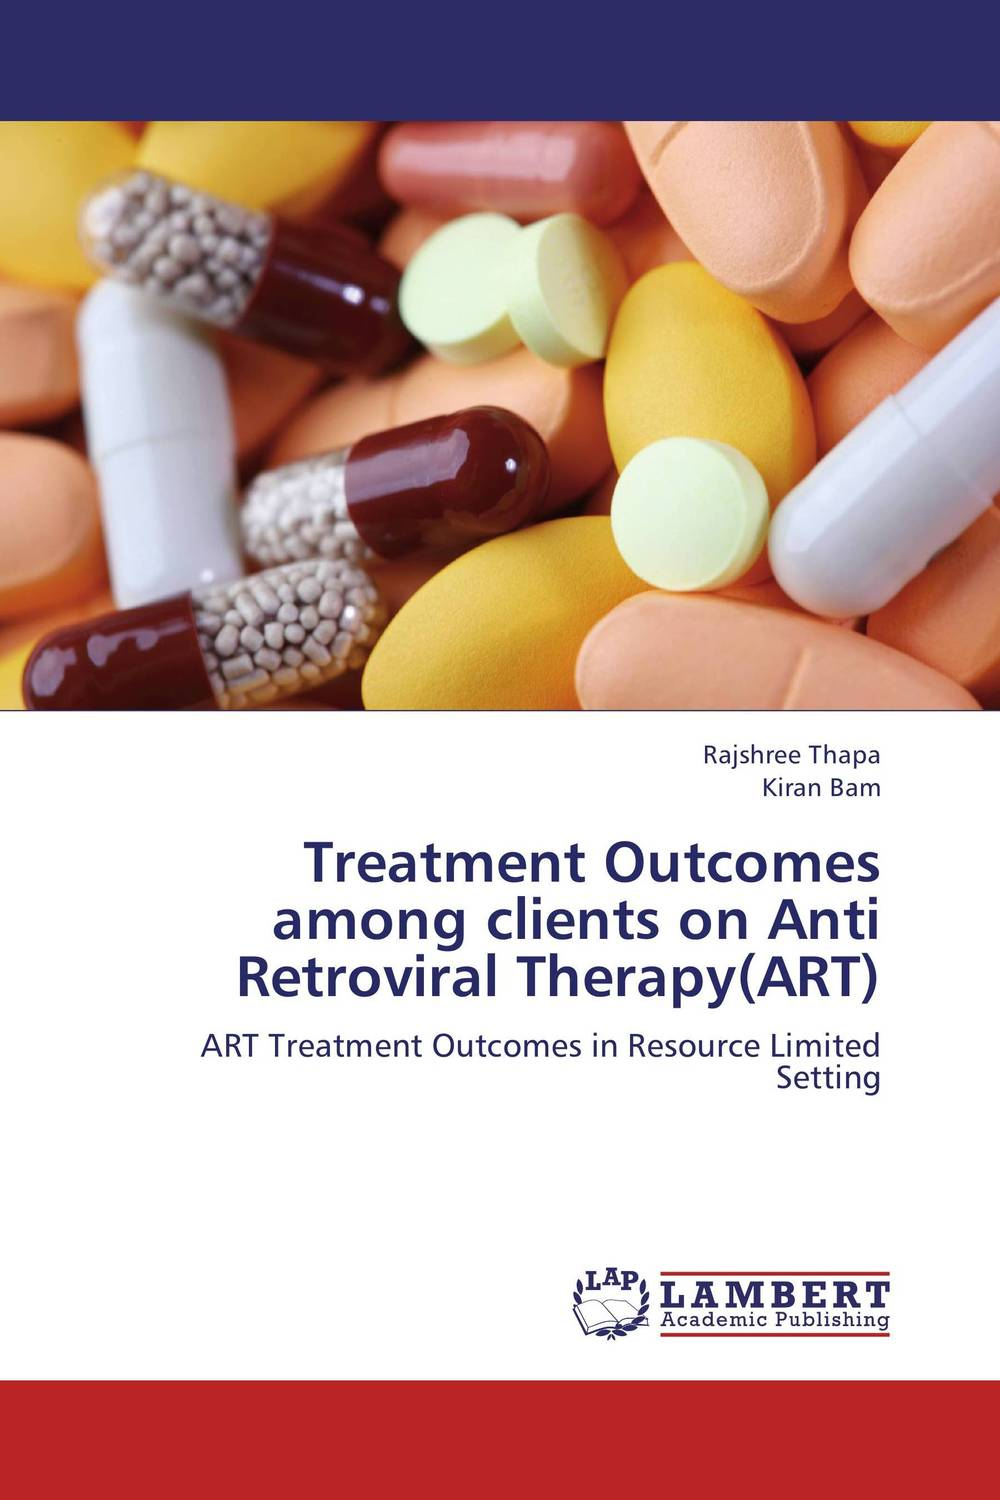 Treatment Outcomes among clients on Anti Retroviral Therapy(ART) купить